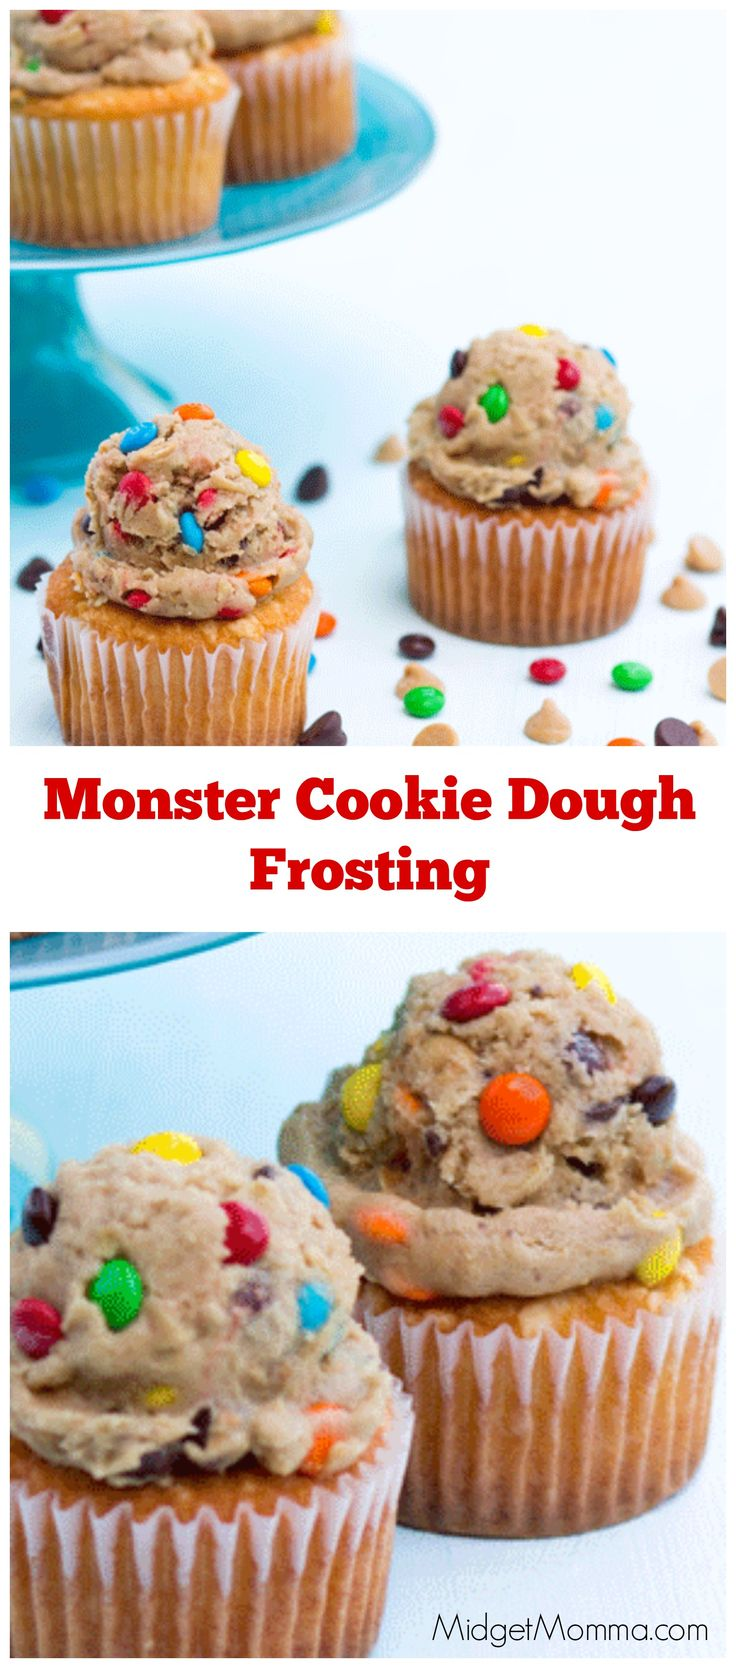 Monster Cookie Dough Frosting Just like eating the cookie dough before it hits the oven. Added on top of a cupcake these are amazing and a kids favorite!